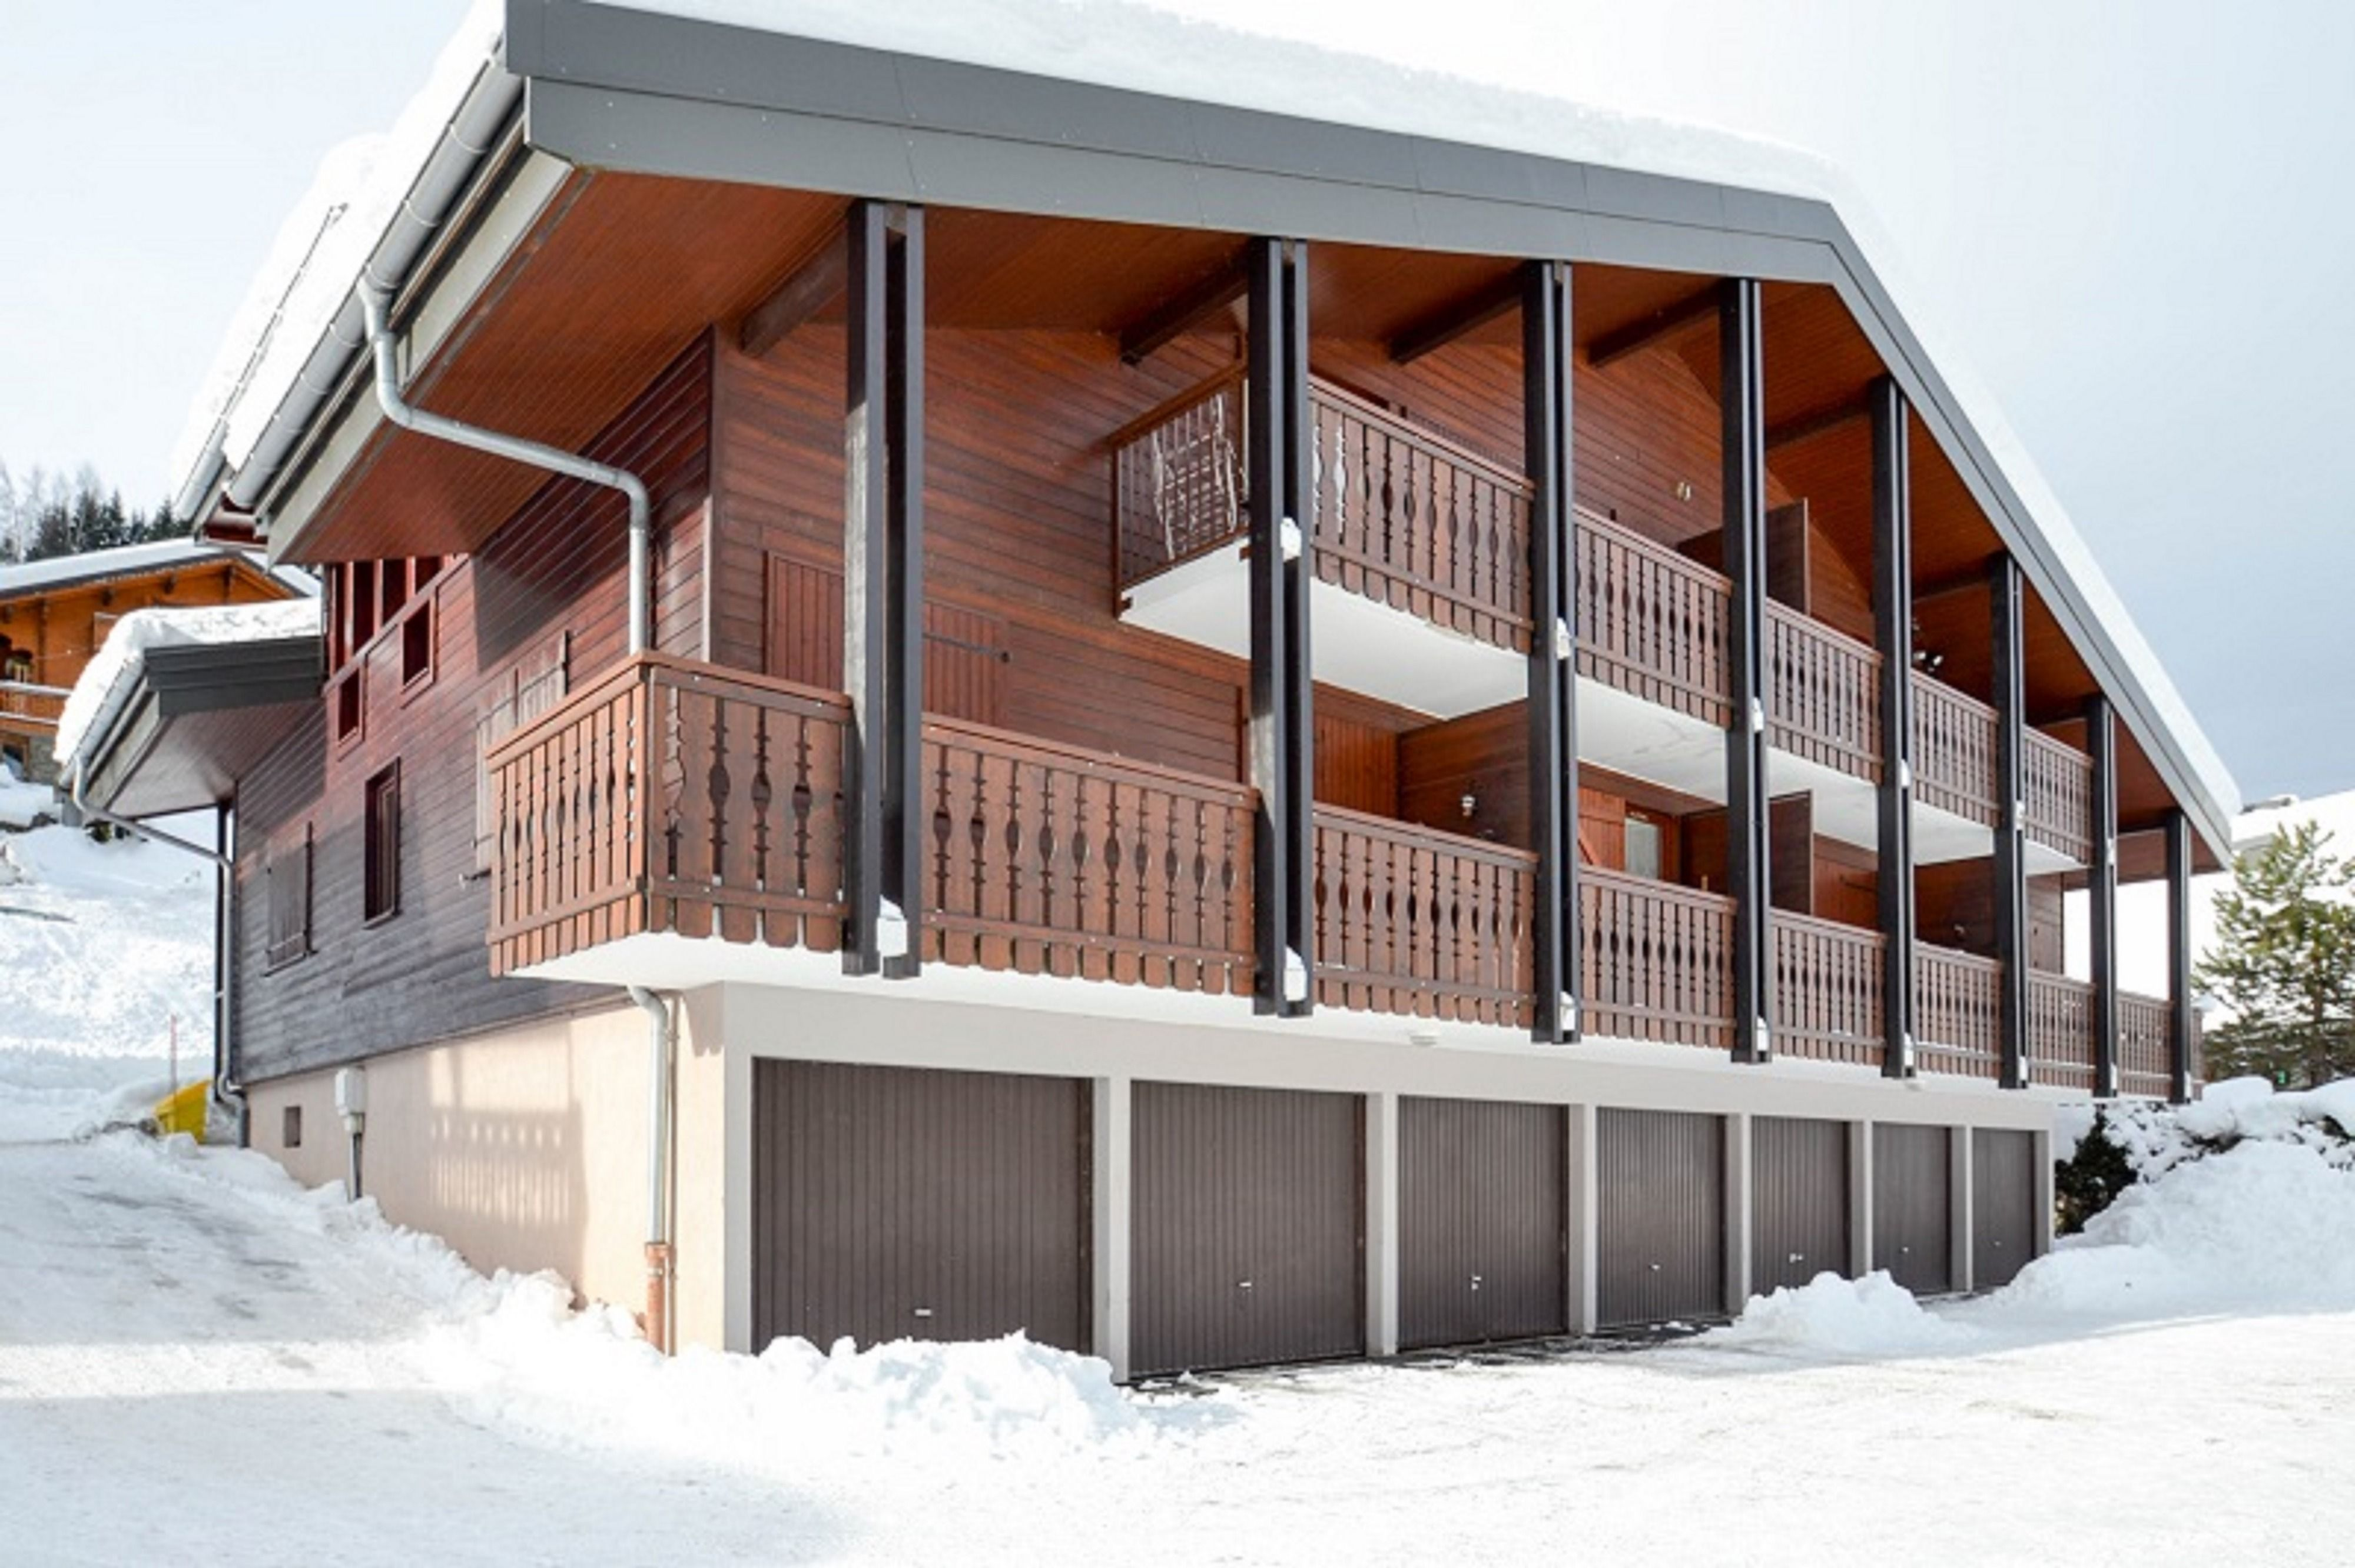 Charming 1 Bed Plus Mezzanine Chalet Apartment In An Enviable Location Skiproperty Realestate Leggettimmobilier